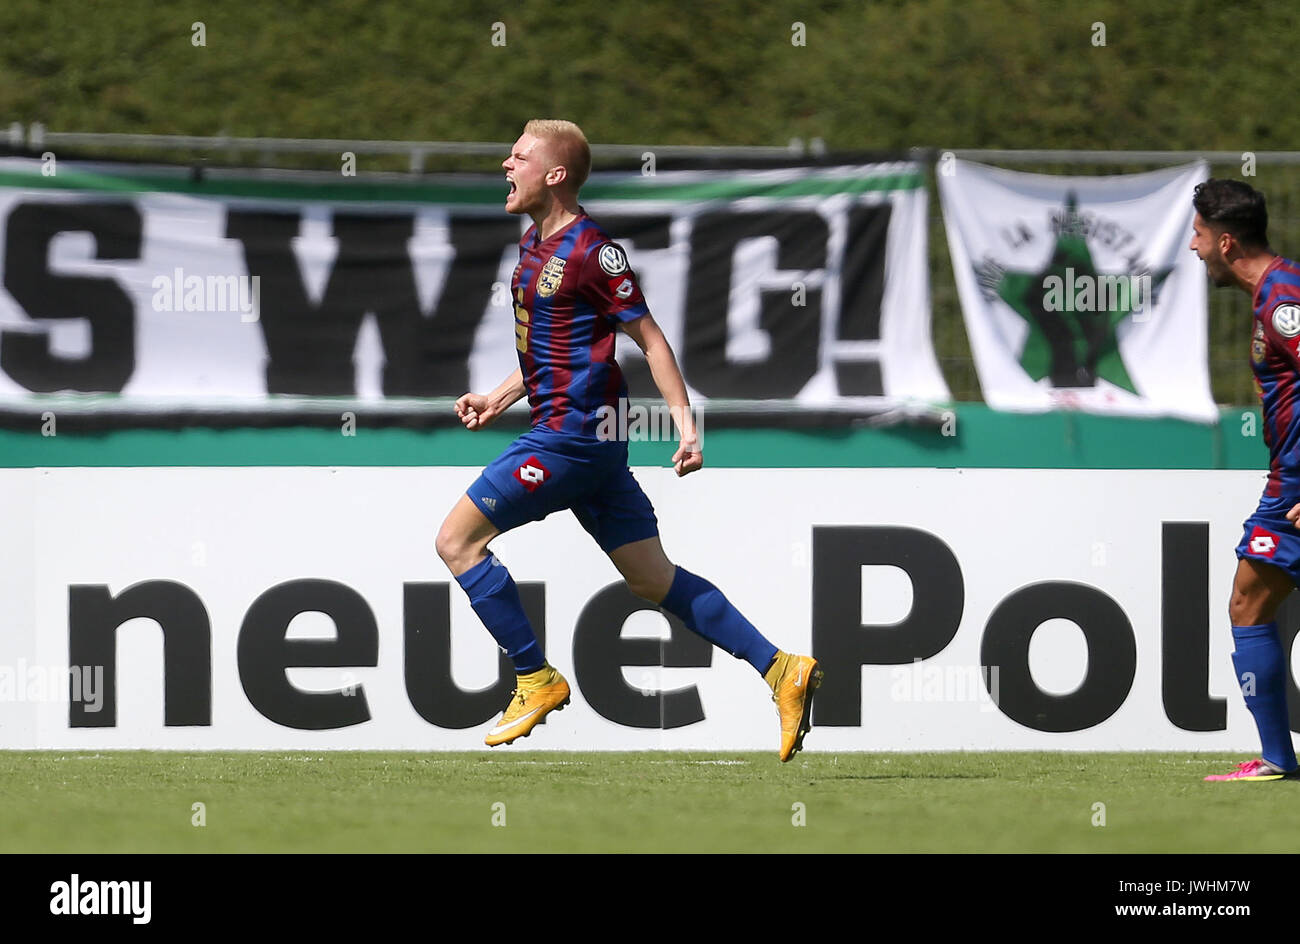 Bonn's Lars Lokotsch celebrates after giving his side a 1:0 lead during the German Soccer Association (DFB) Cup first-round match between Bonner SC and Hanover 96 in the Sportpark Nord Stadium in Bonn, Germany, 13 August 2017. (EMBARGO CONDITIONS - ATTENTION: The DFB prohibits the utilisation and publication of sequential pictures on the internet and other online media during the match (including half-time). ATTENTION: BLOCKING PERIOD! The DFB permits the further utilisation and publication of the pictures for mobile services (especially MMS) and for DVB-H and DMB only after the end of the - Stock Image